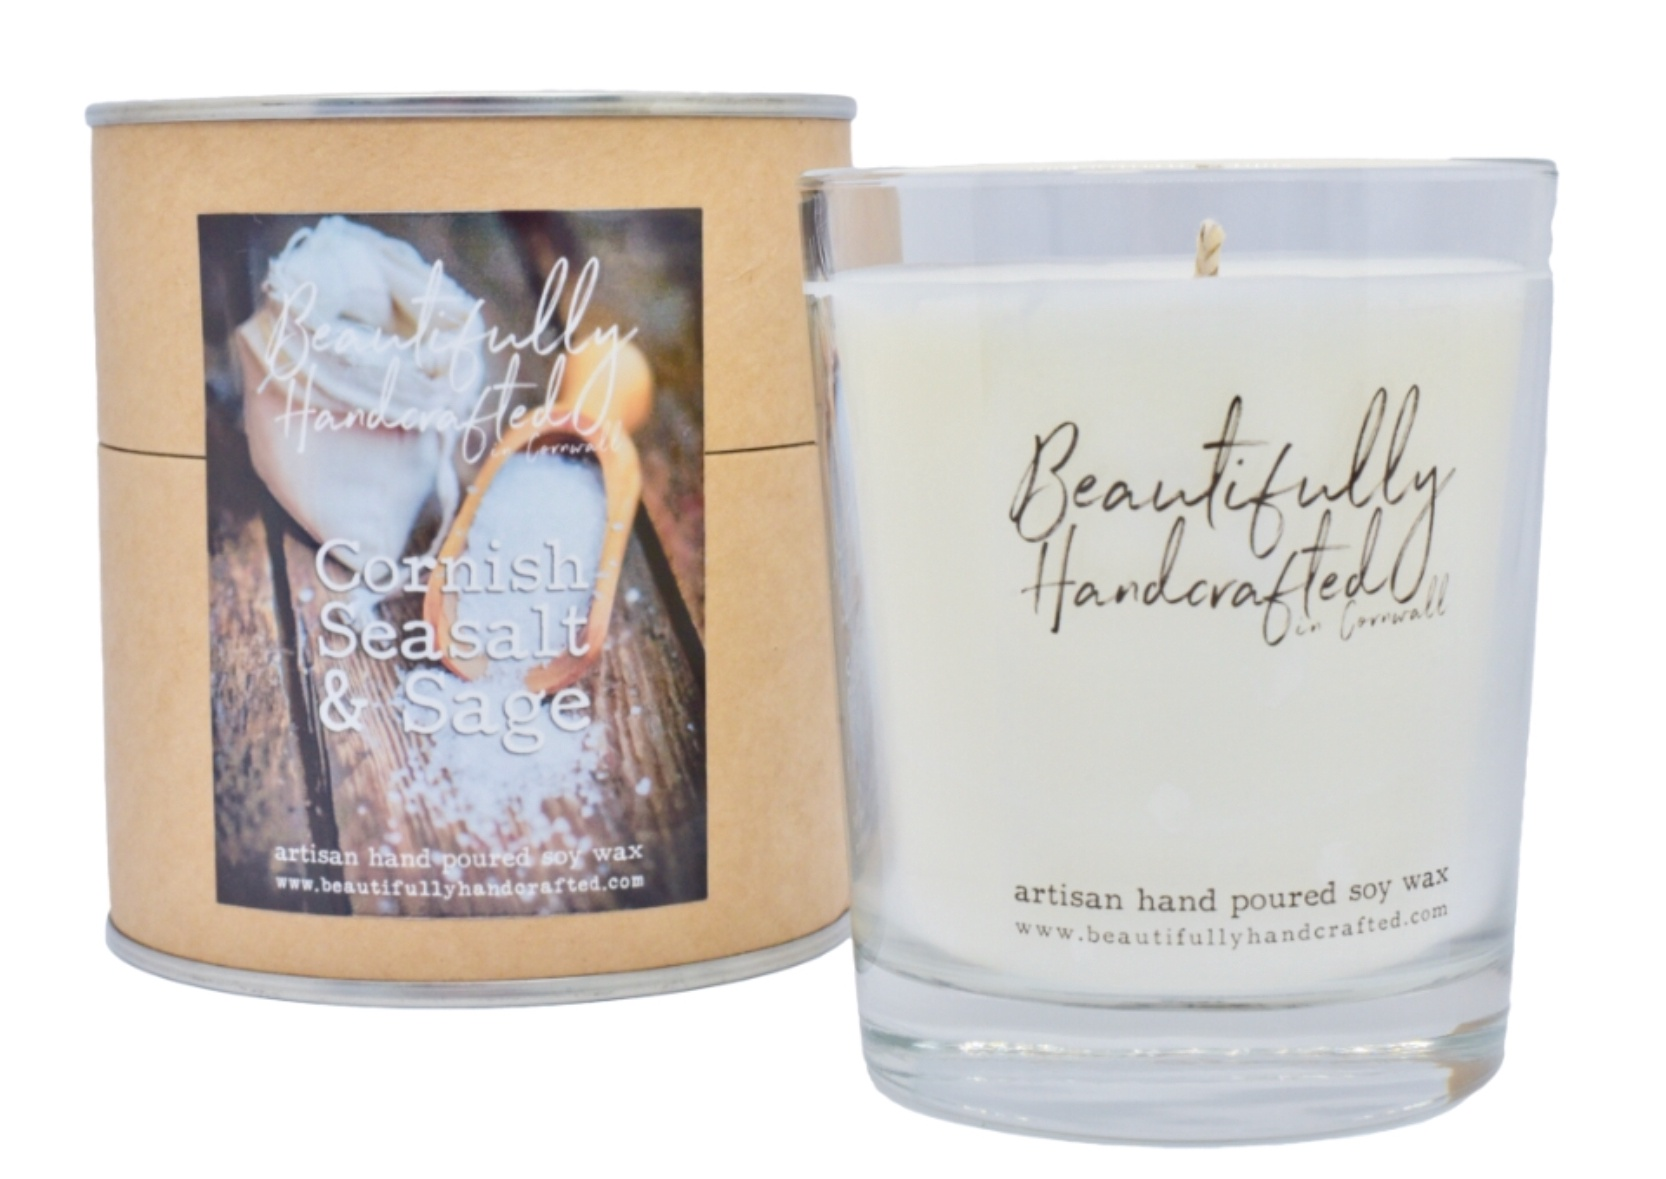 Beautifully Hand Crafted Cornish Seasalt & Sage Jar Candle